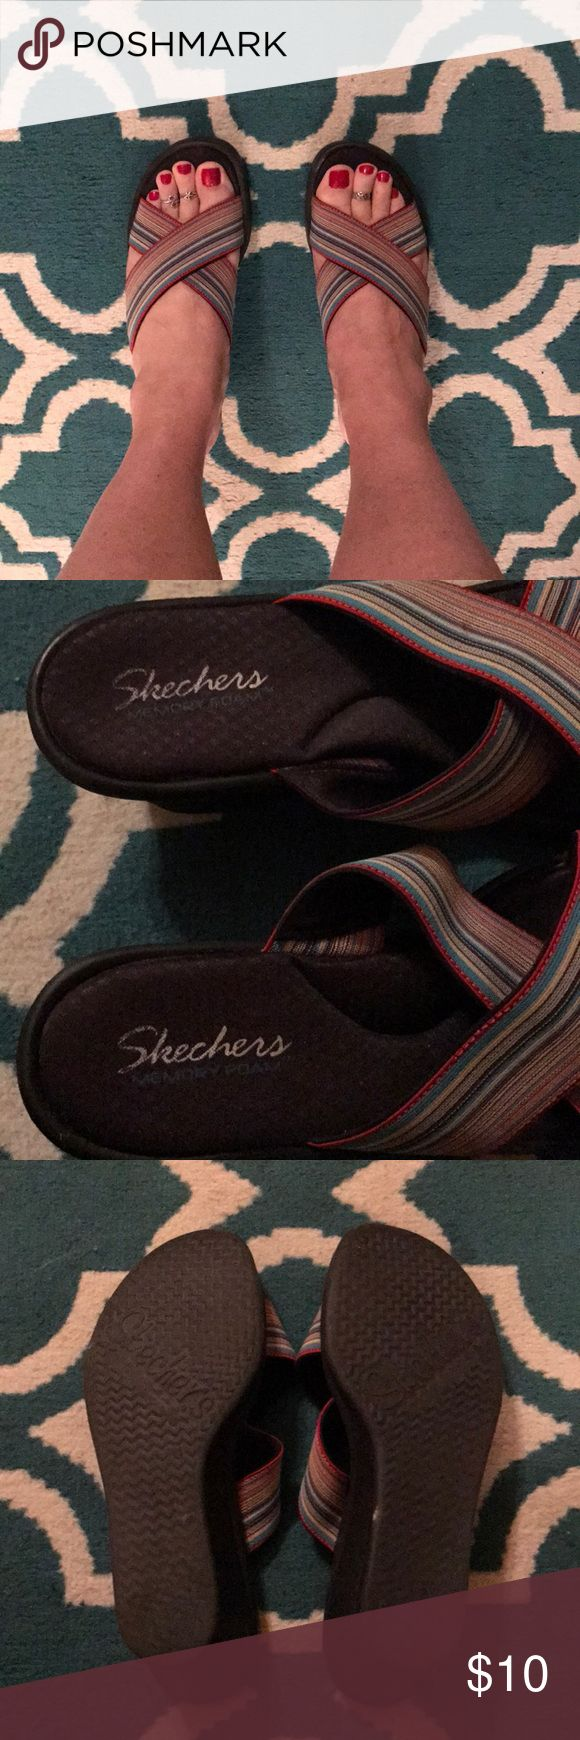 Skechers Memory Foam Wedge Sandals Super comfy, multi colored Skechers wedges. Skechers Shoes Wedges